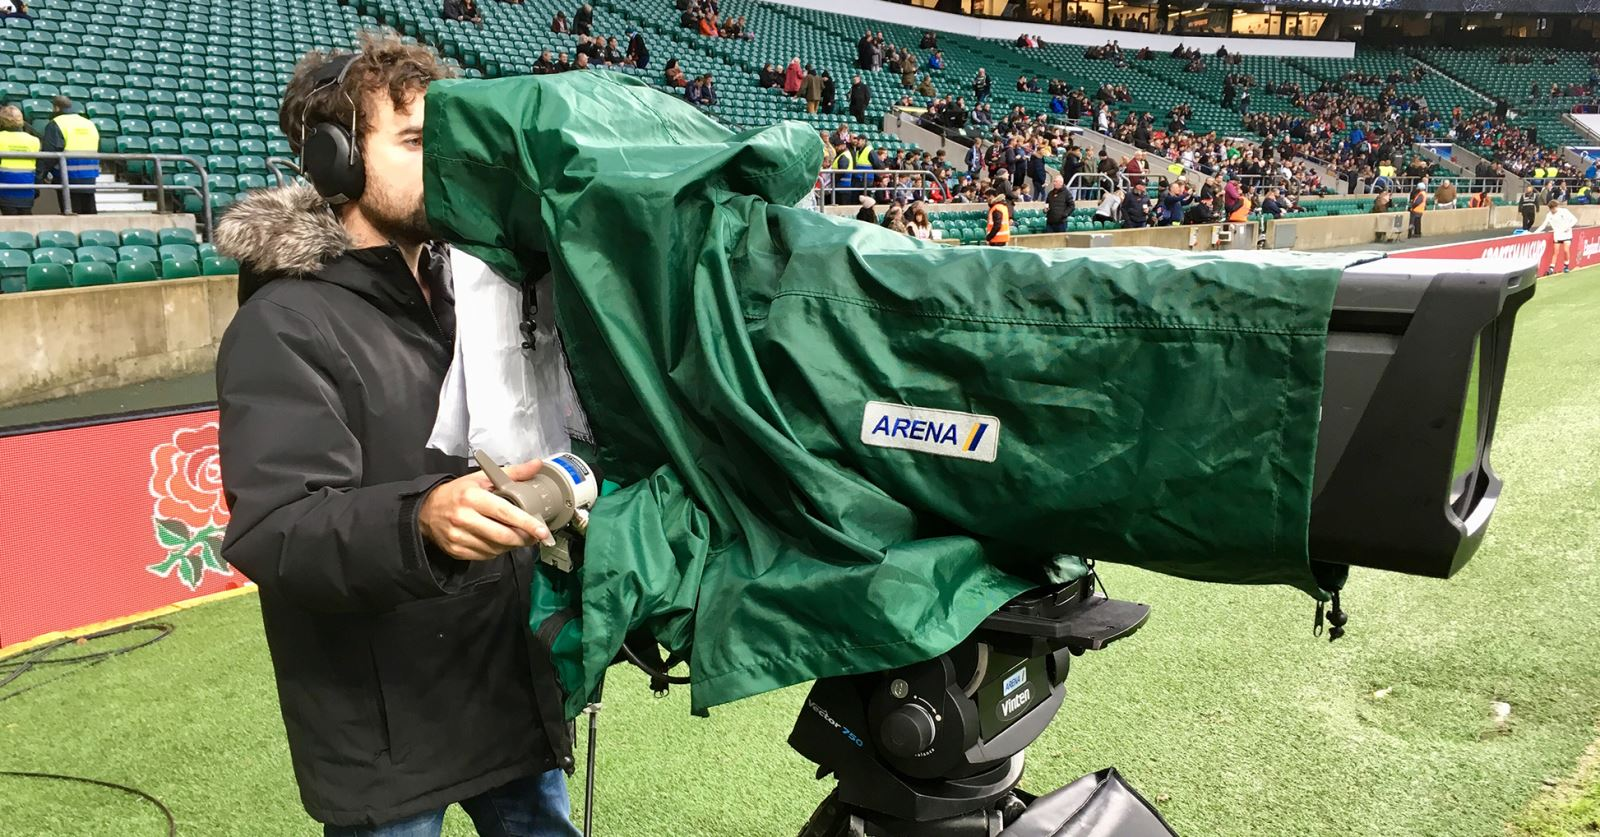 Welcome to new GTC Member Gilad McAteer, seen here operating for Sky TV, England v Argentina rugby, Twickenham